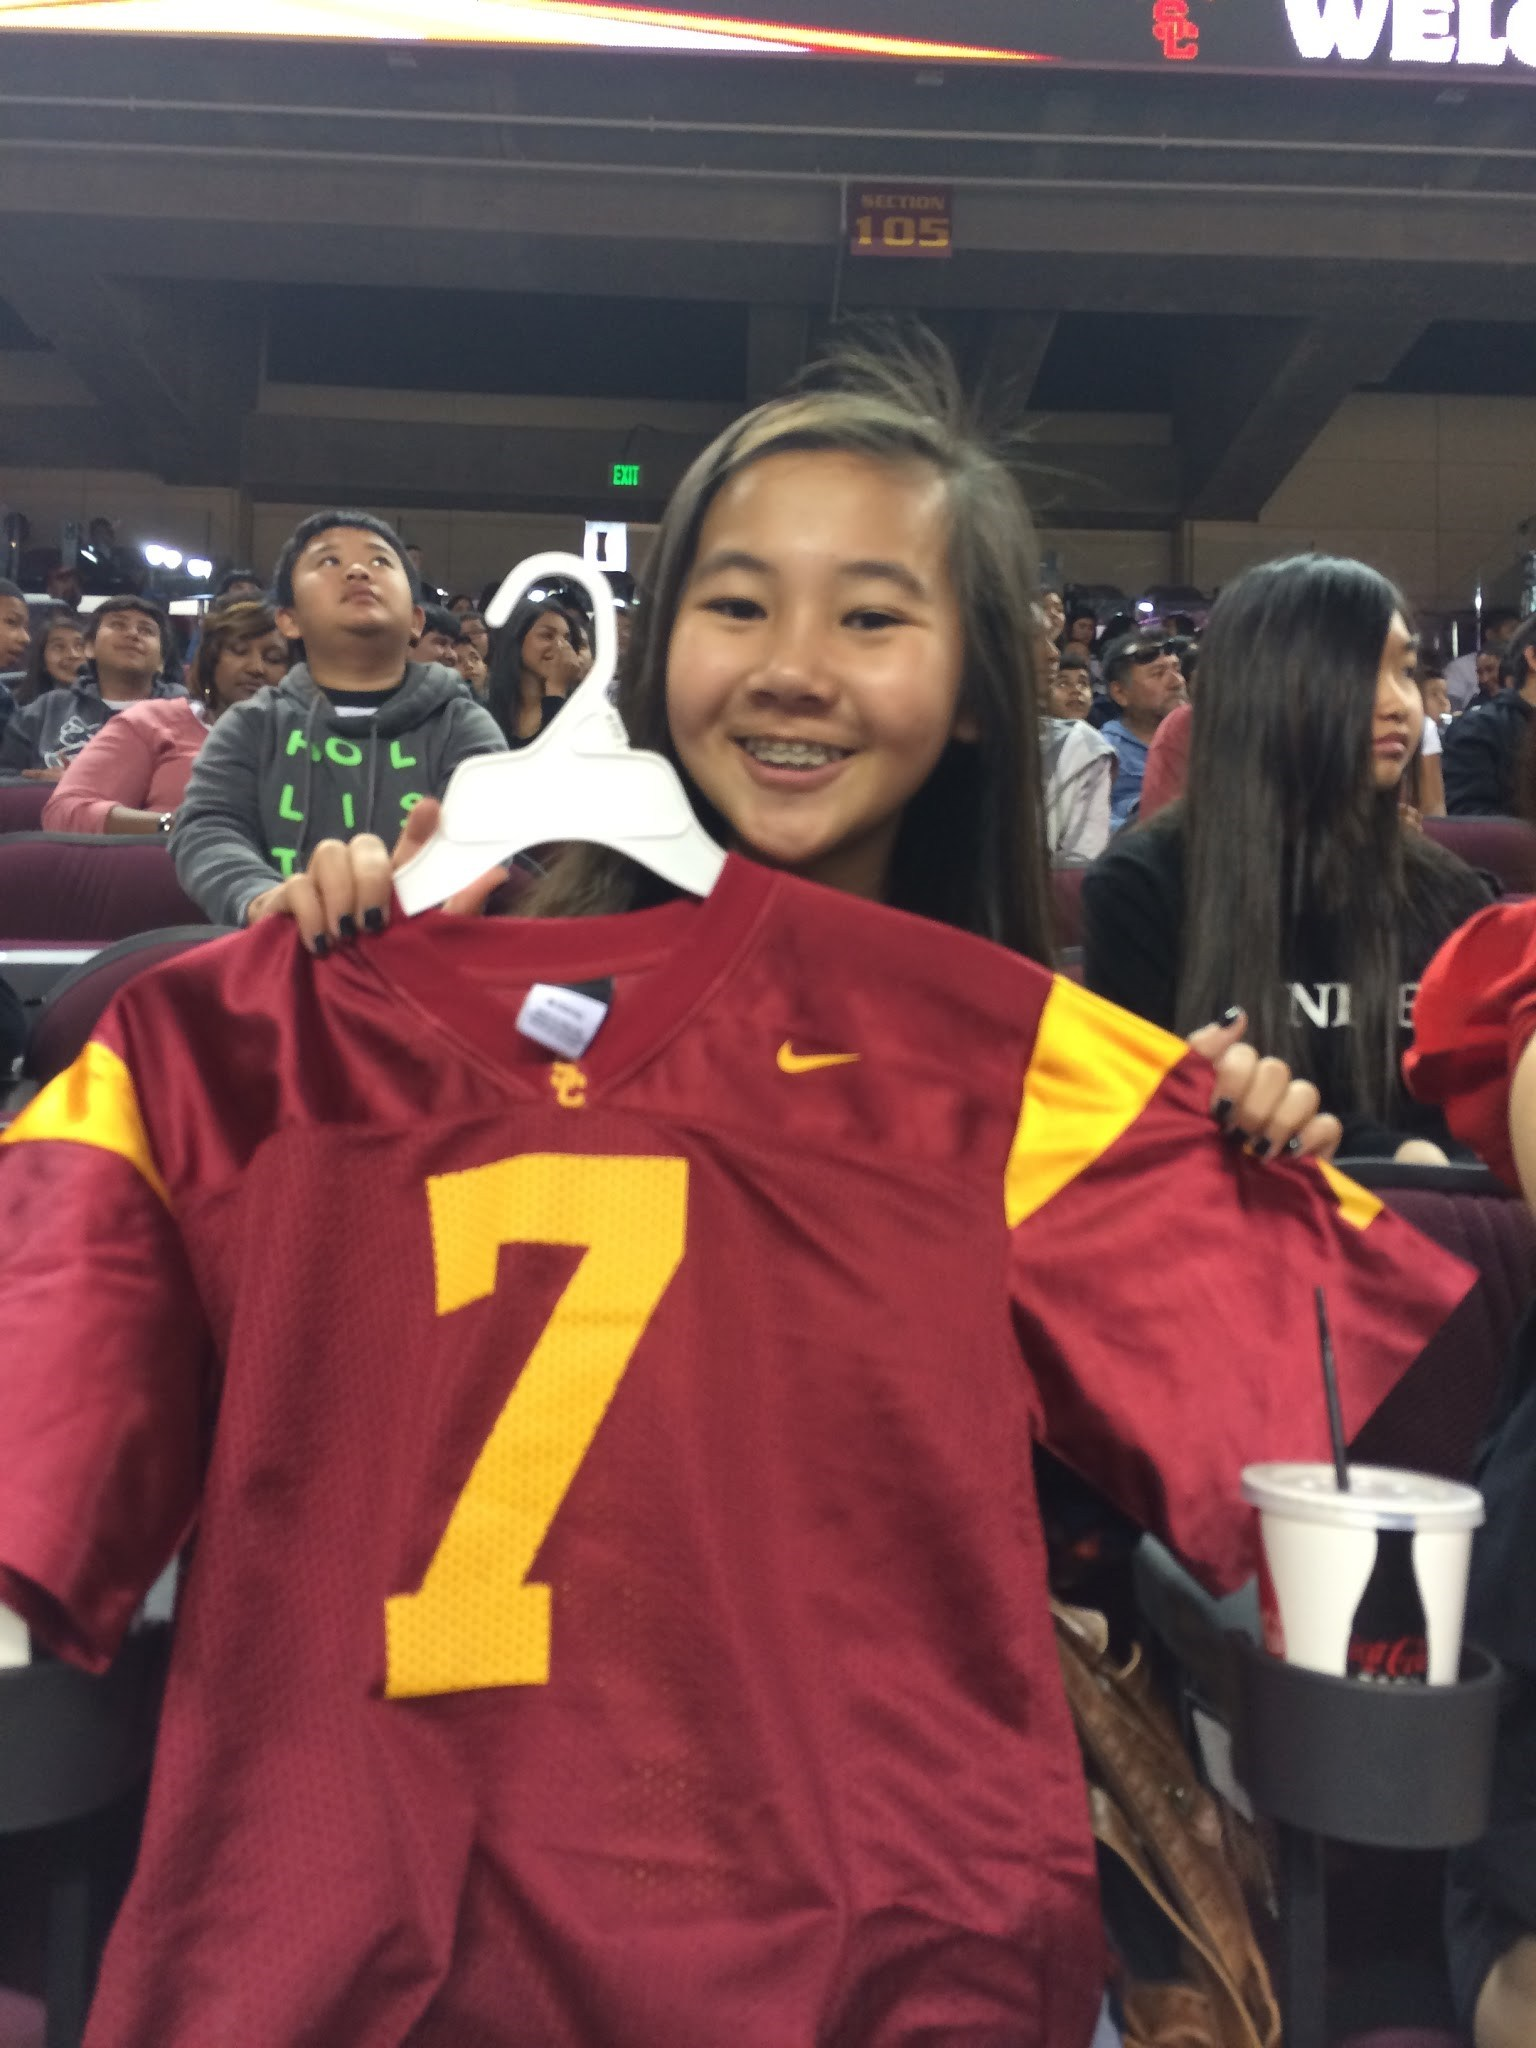 Students get USC Jerseys